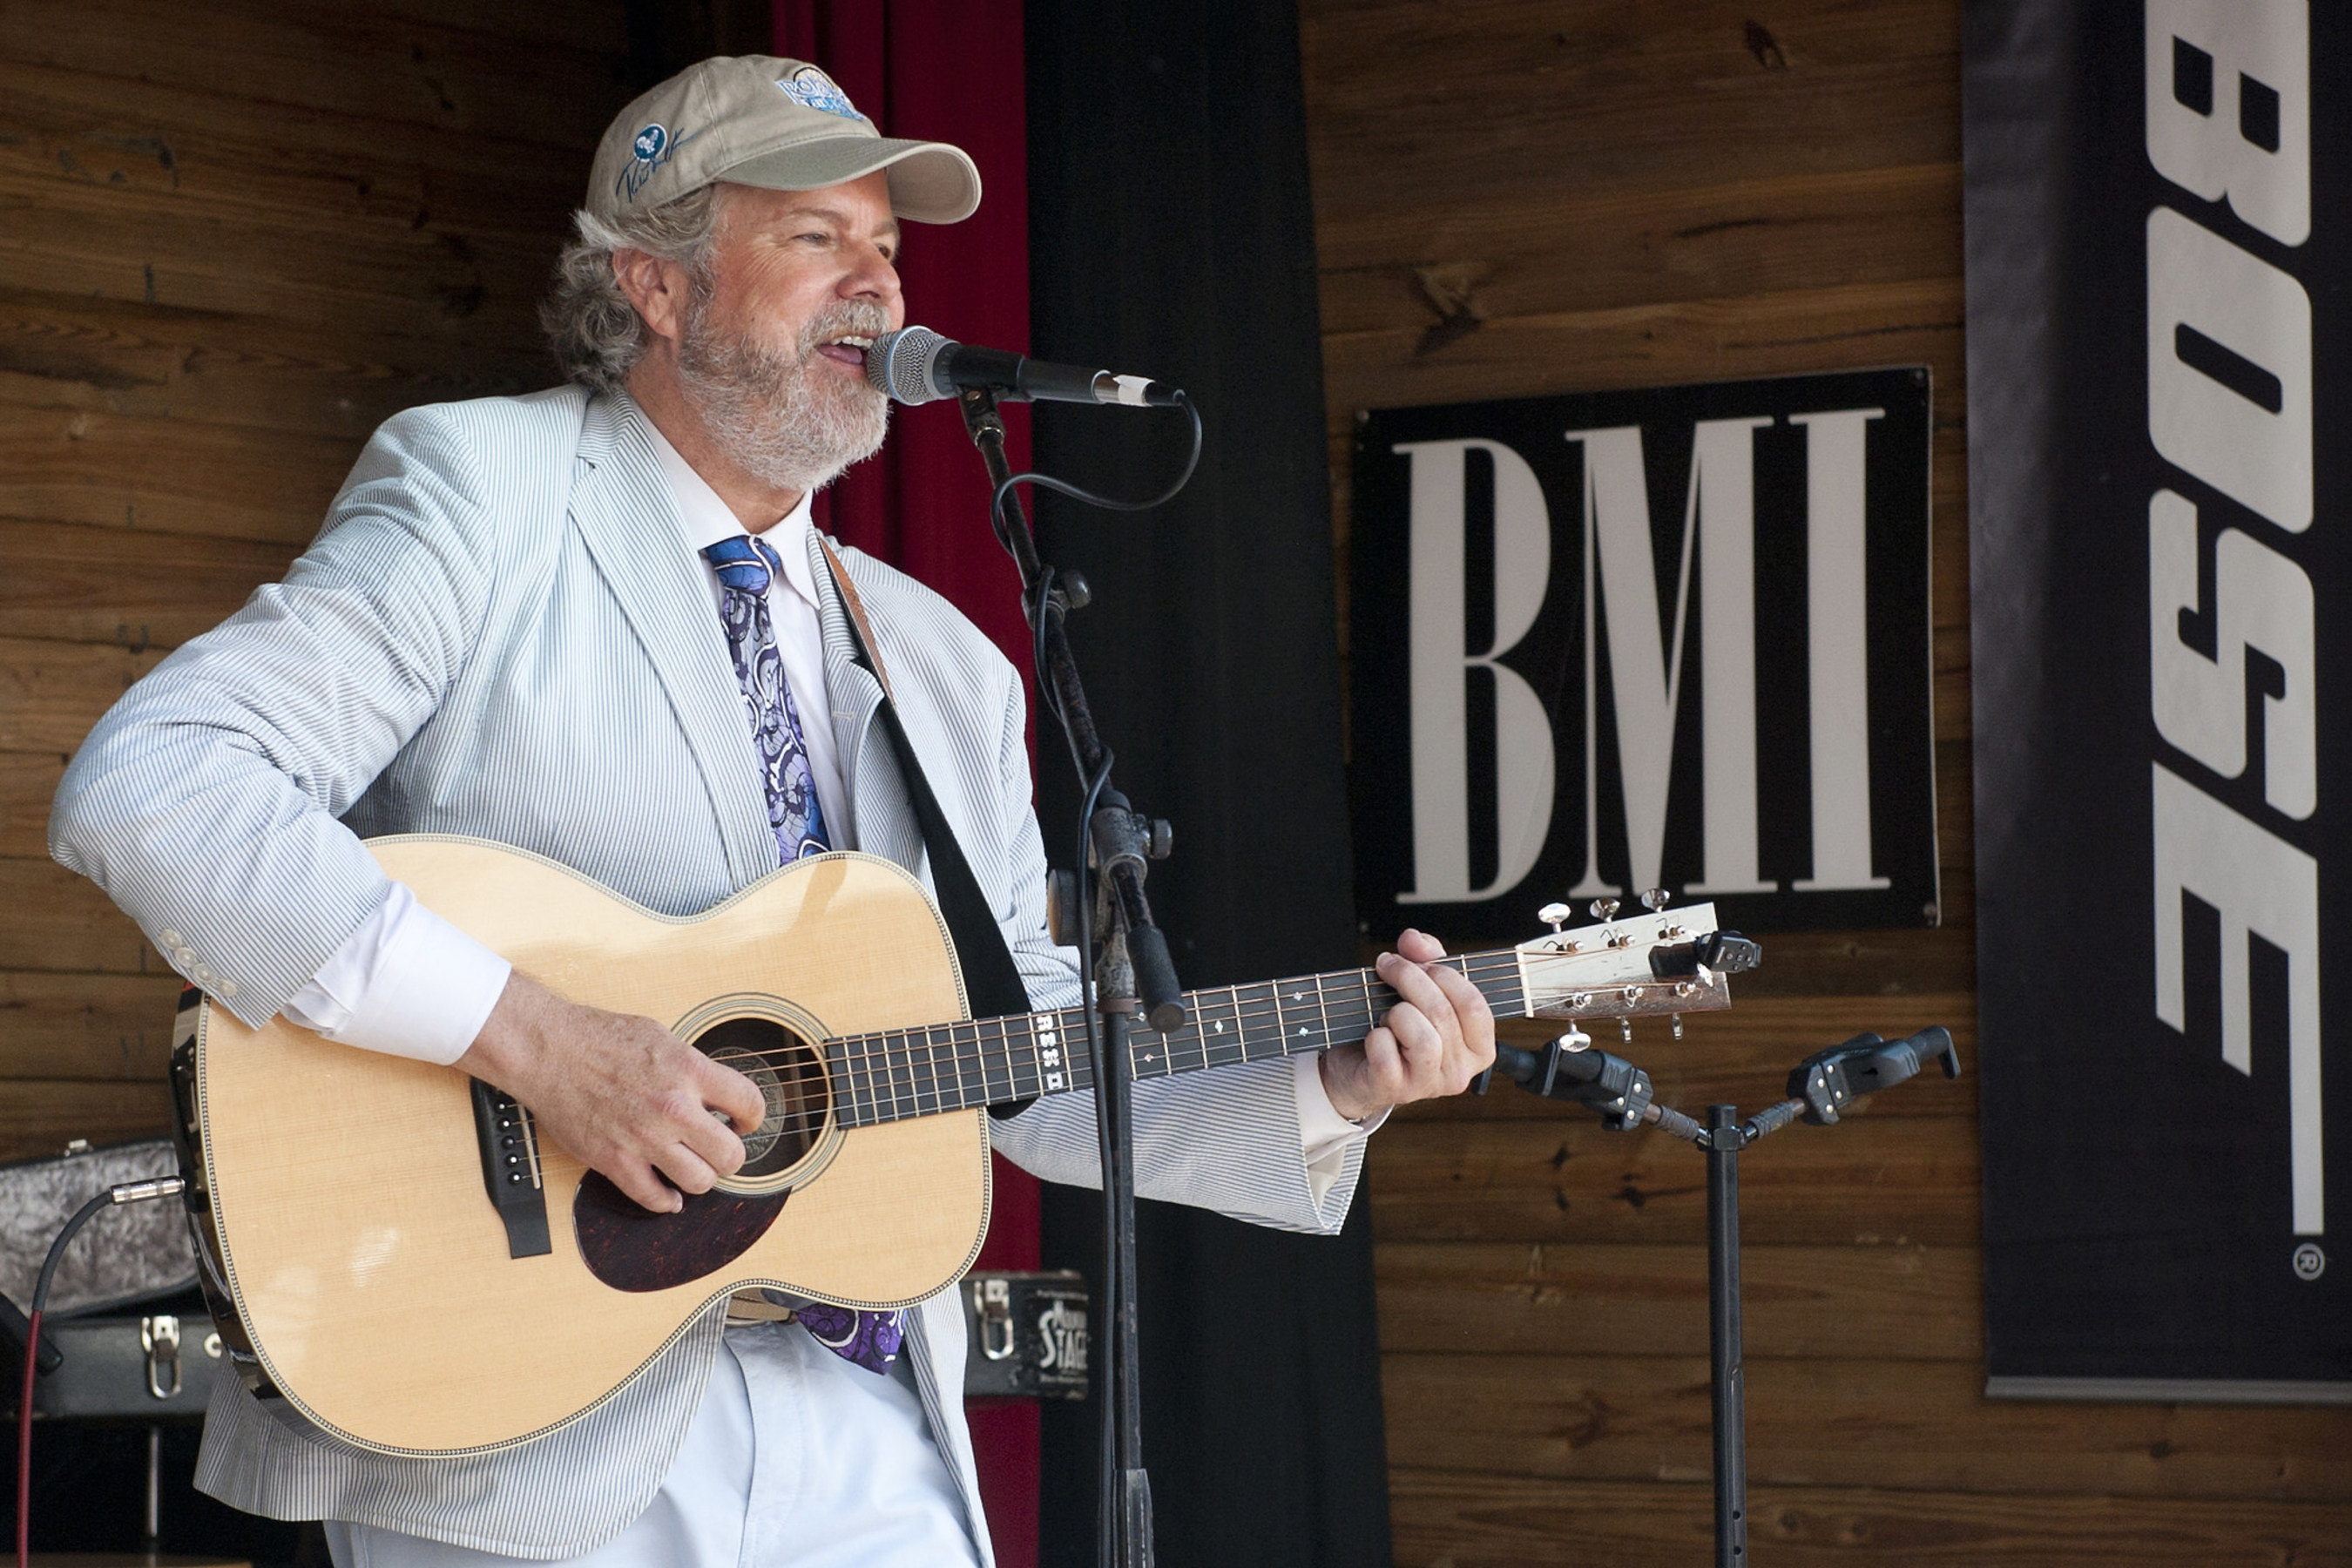 Texas Songwriter Robert Earl Keen Announces 2016 Hall Of Fame Honorees For The Texas Heritage Songwriters' Association